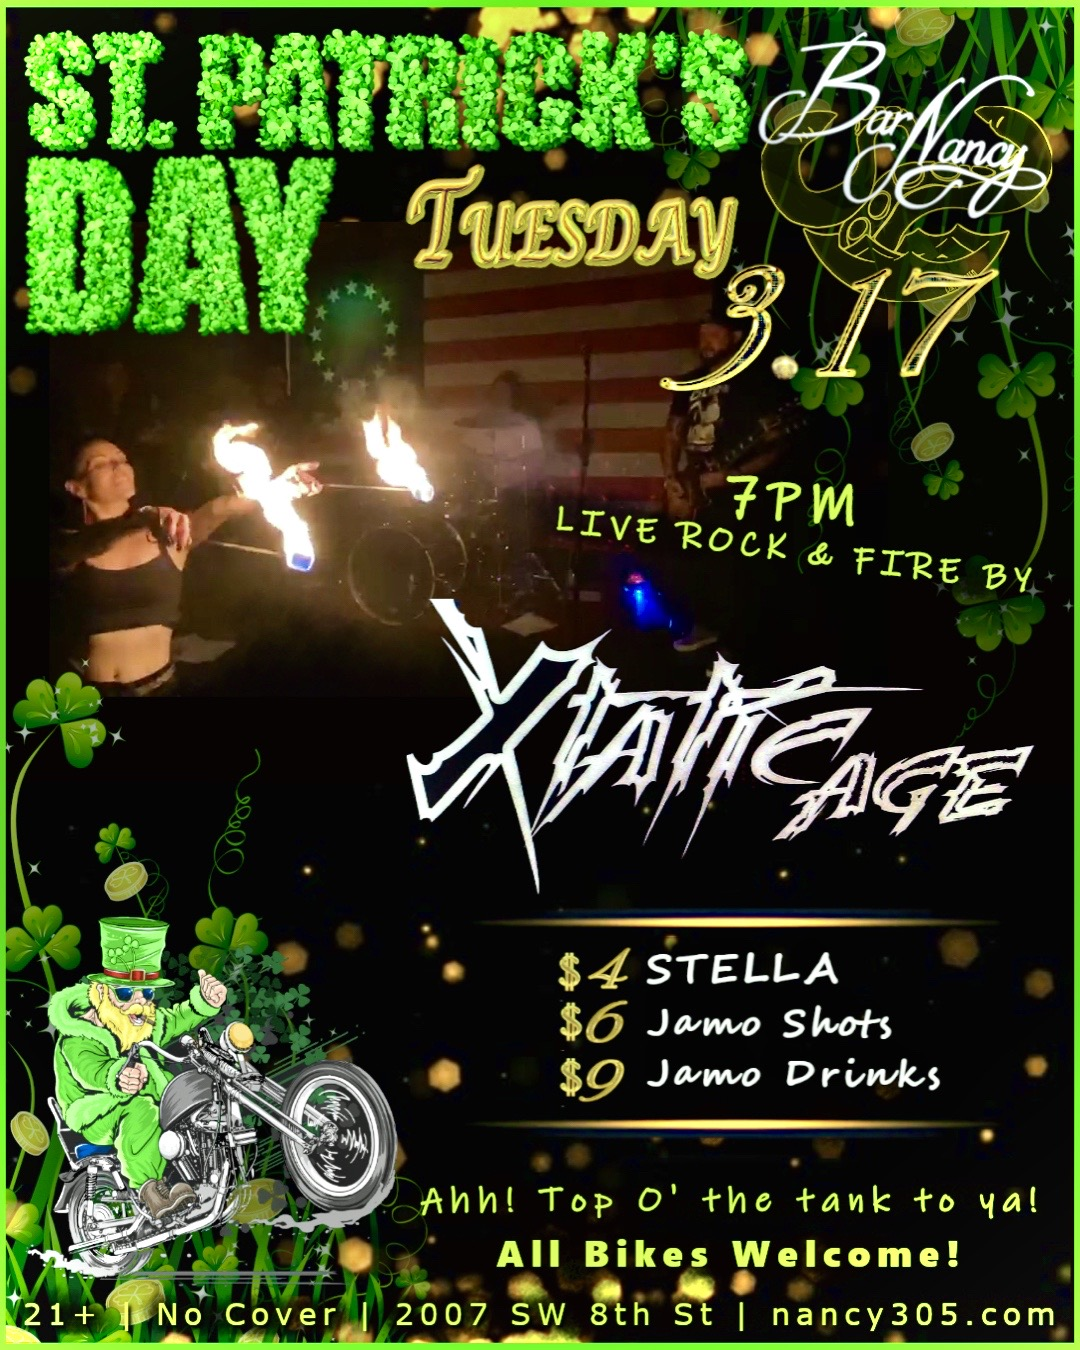 St. Patrick's Day Bike Nite! Live Rock & Fire By: Xtatic Age! at Bar Nancy